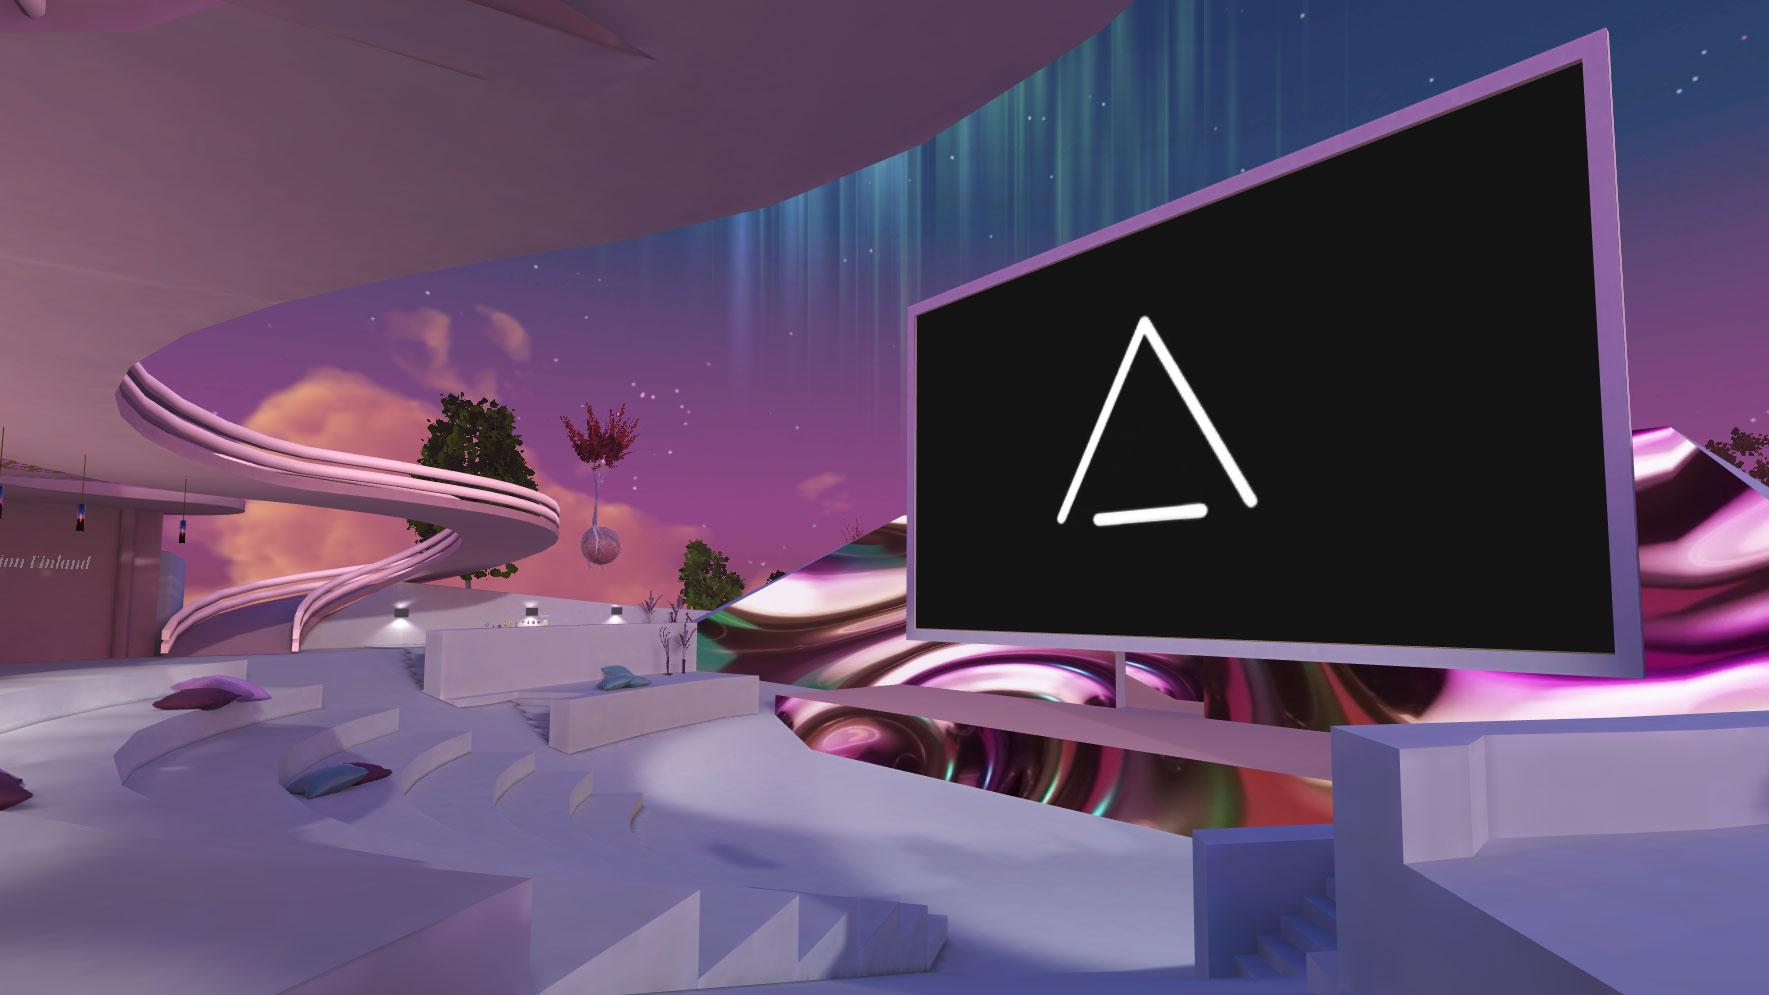 AltspaceVR screenshot: stage of Aurora Amphitheater, surrounded by northern lights.